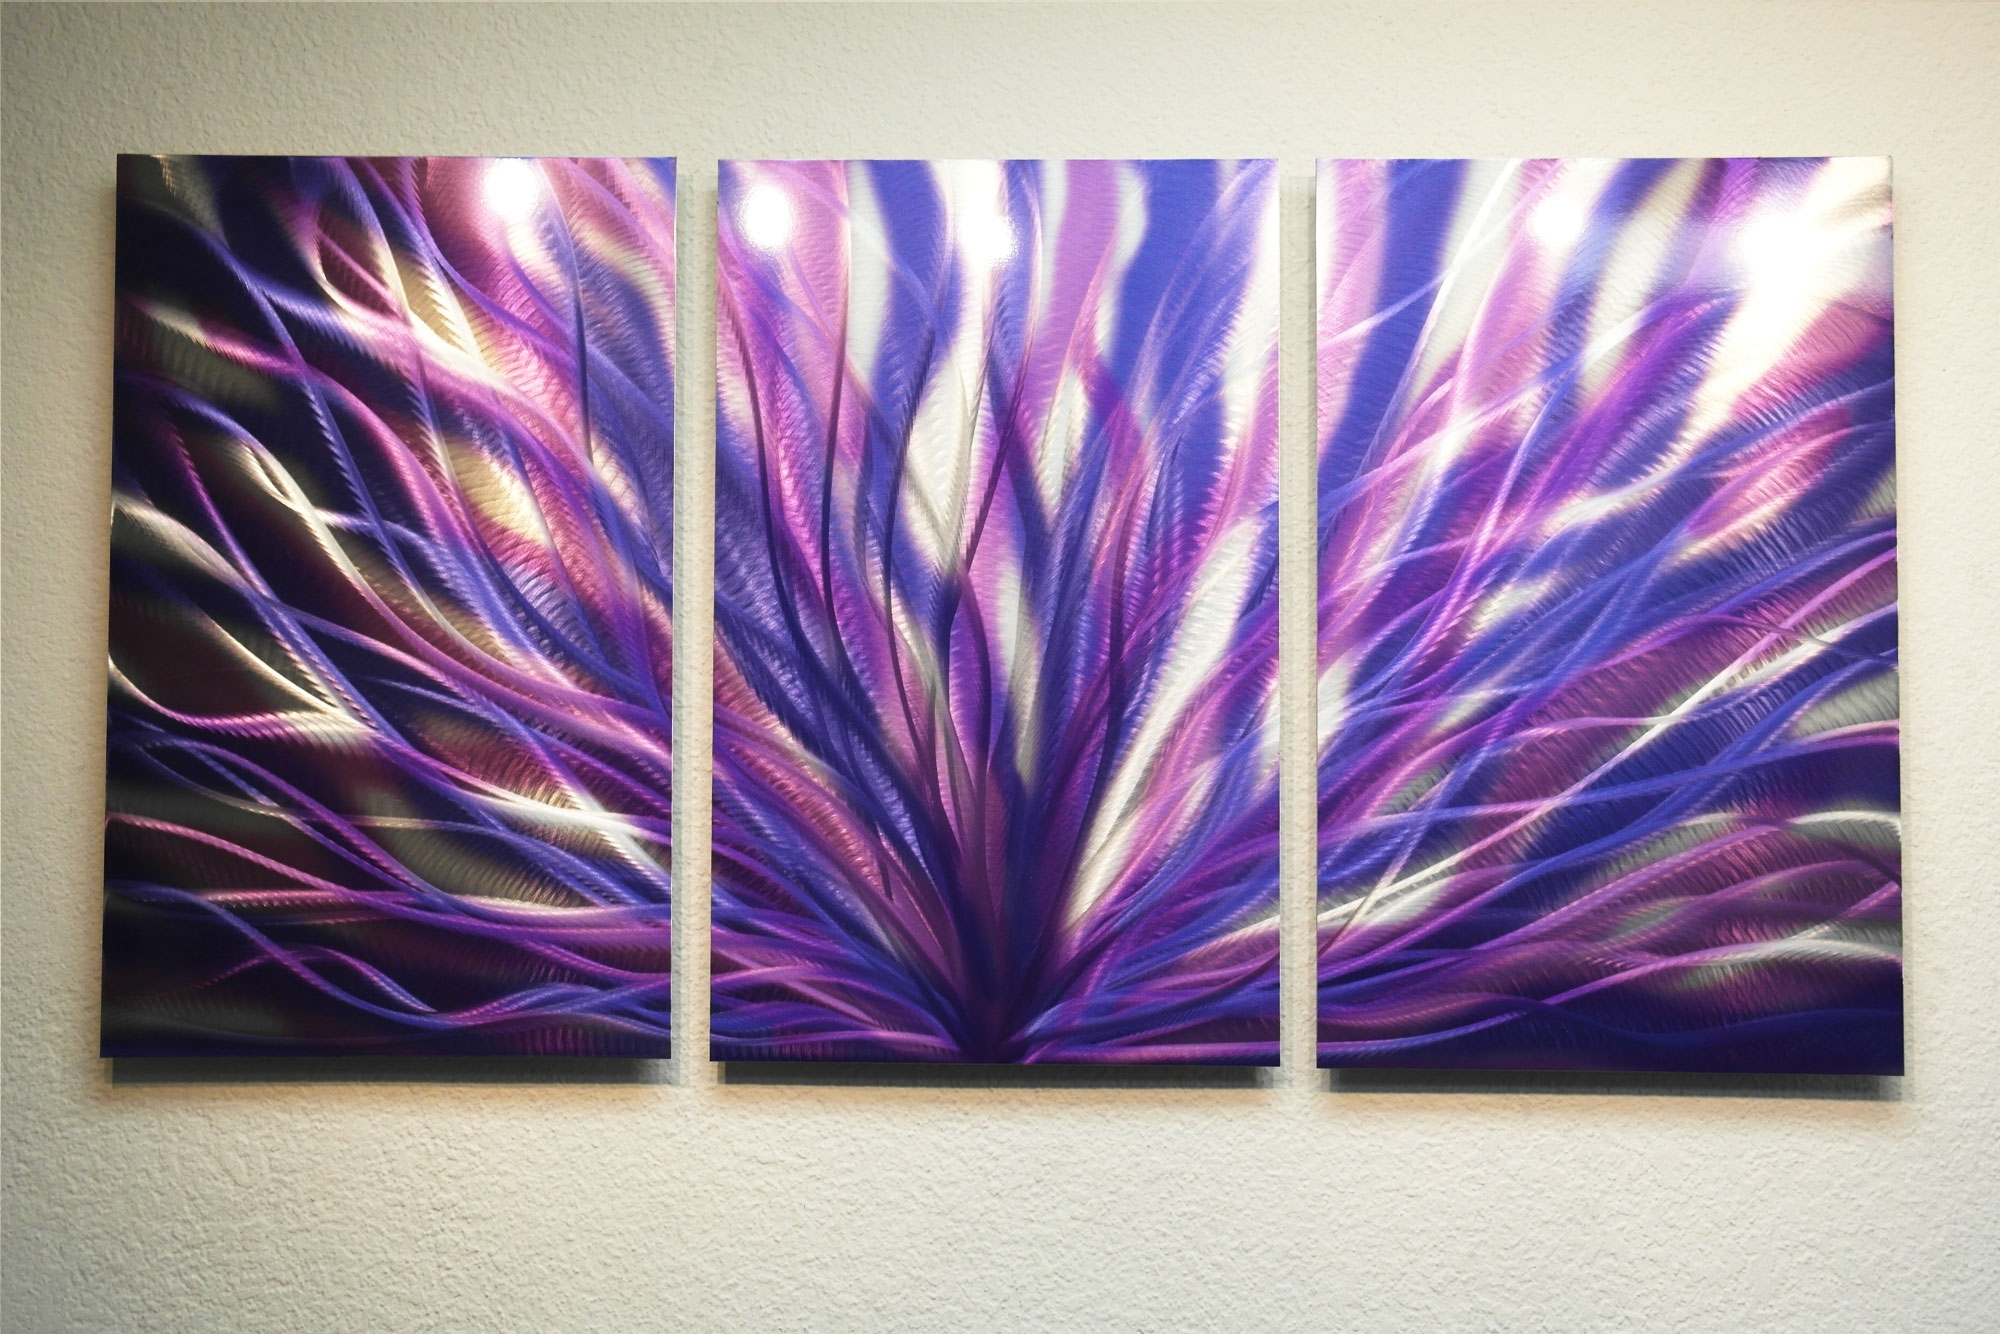 Home · Inspiring Art Gallery · Online Store Poweredstorenvy Intended For Recent Dark Purple Abstract Wall Art (Gallery 5 of 20)